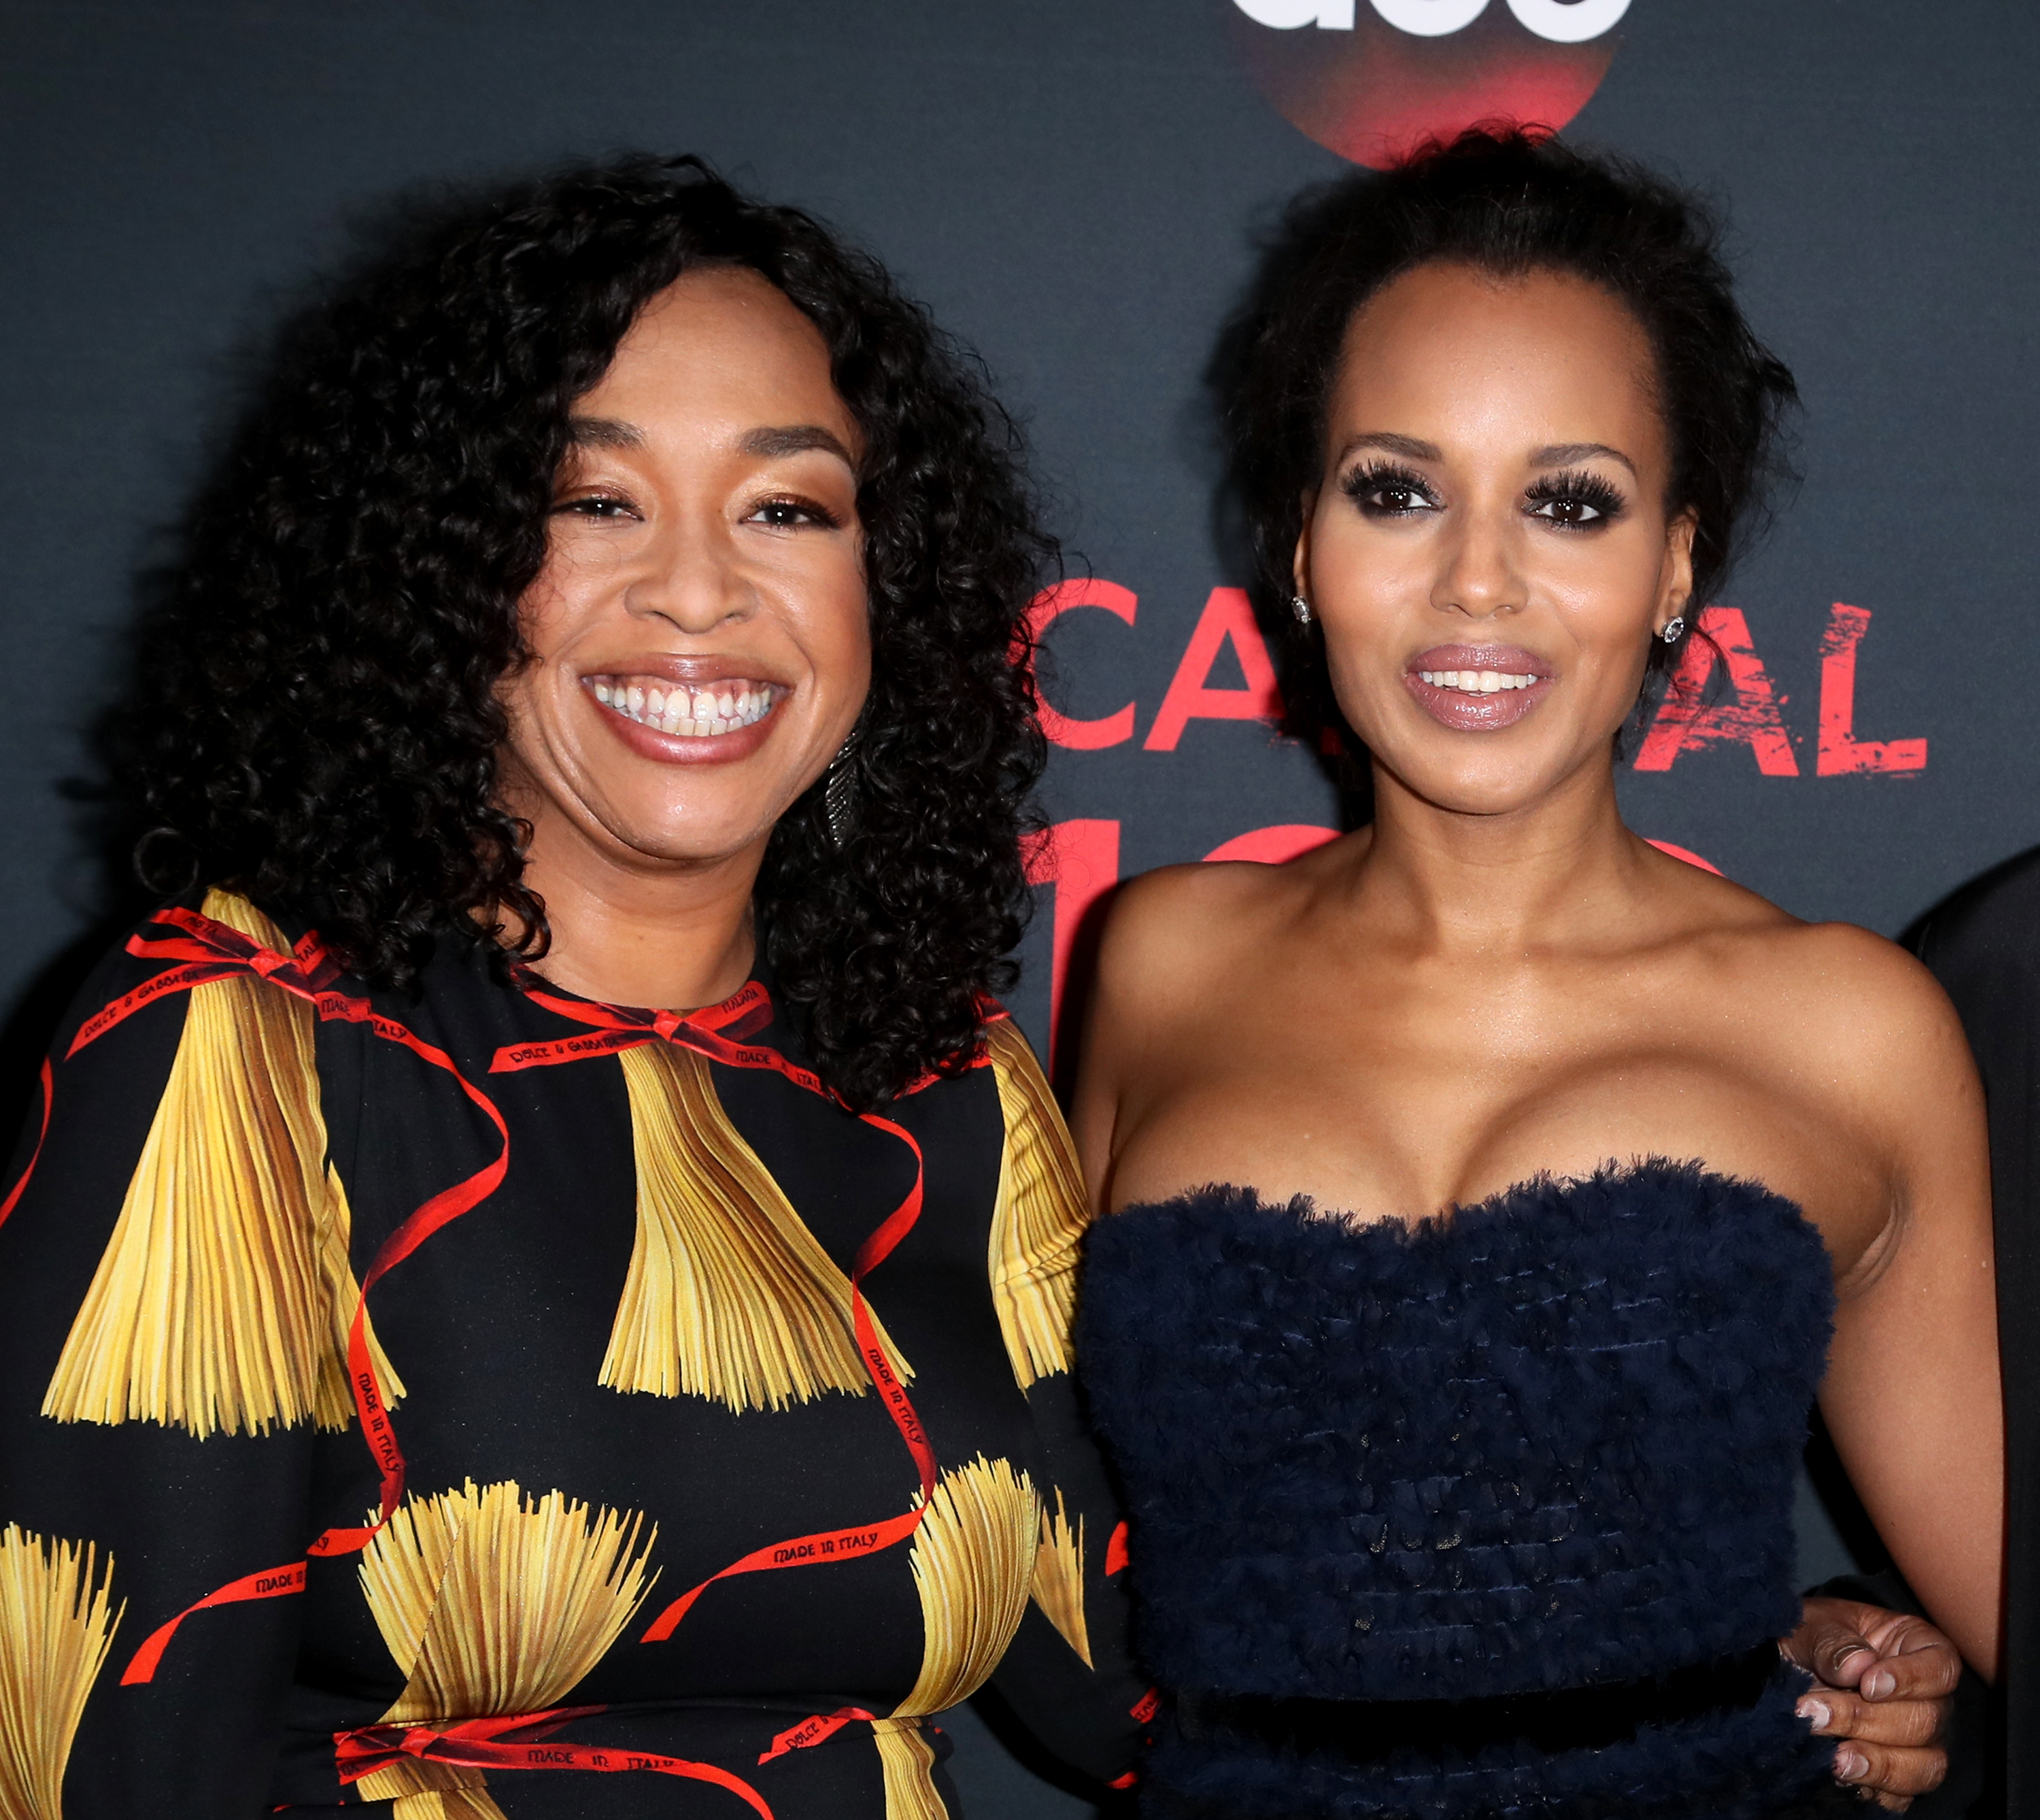 Shonda Rhimes and Kerry Washington pose together, smiling, on the red carpet for Scandal's 100th episode